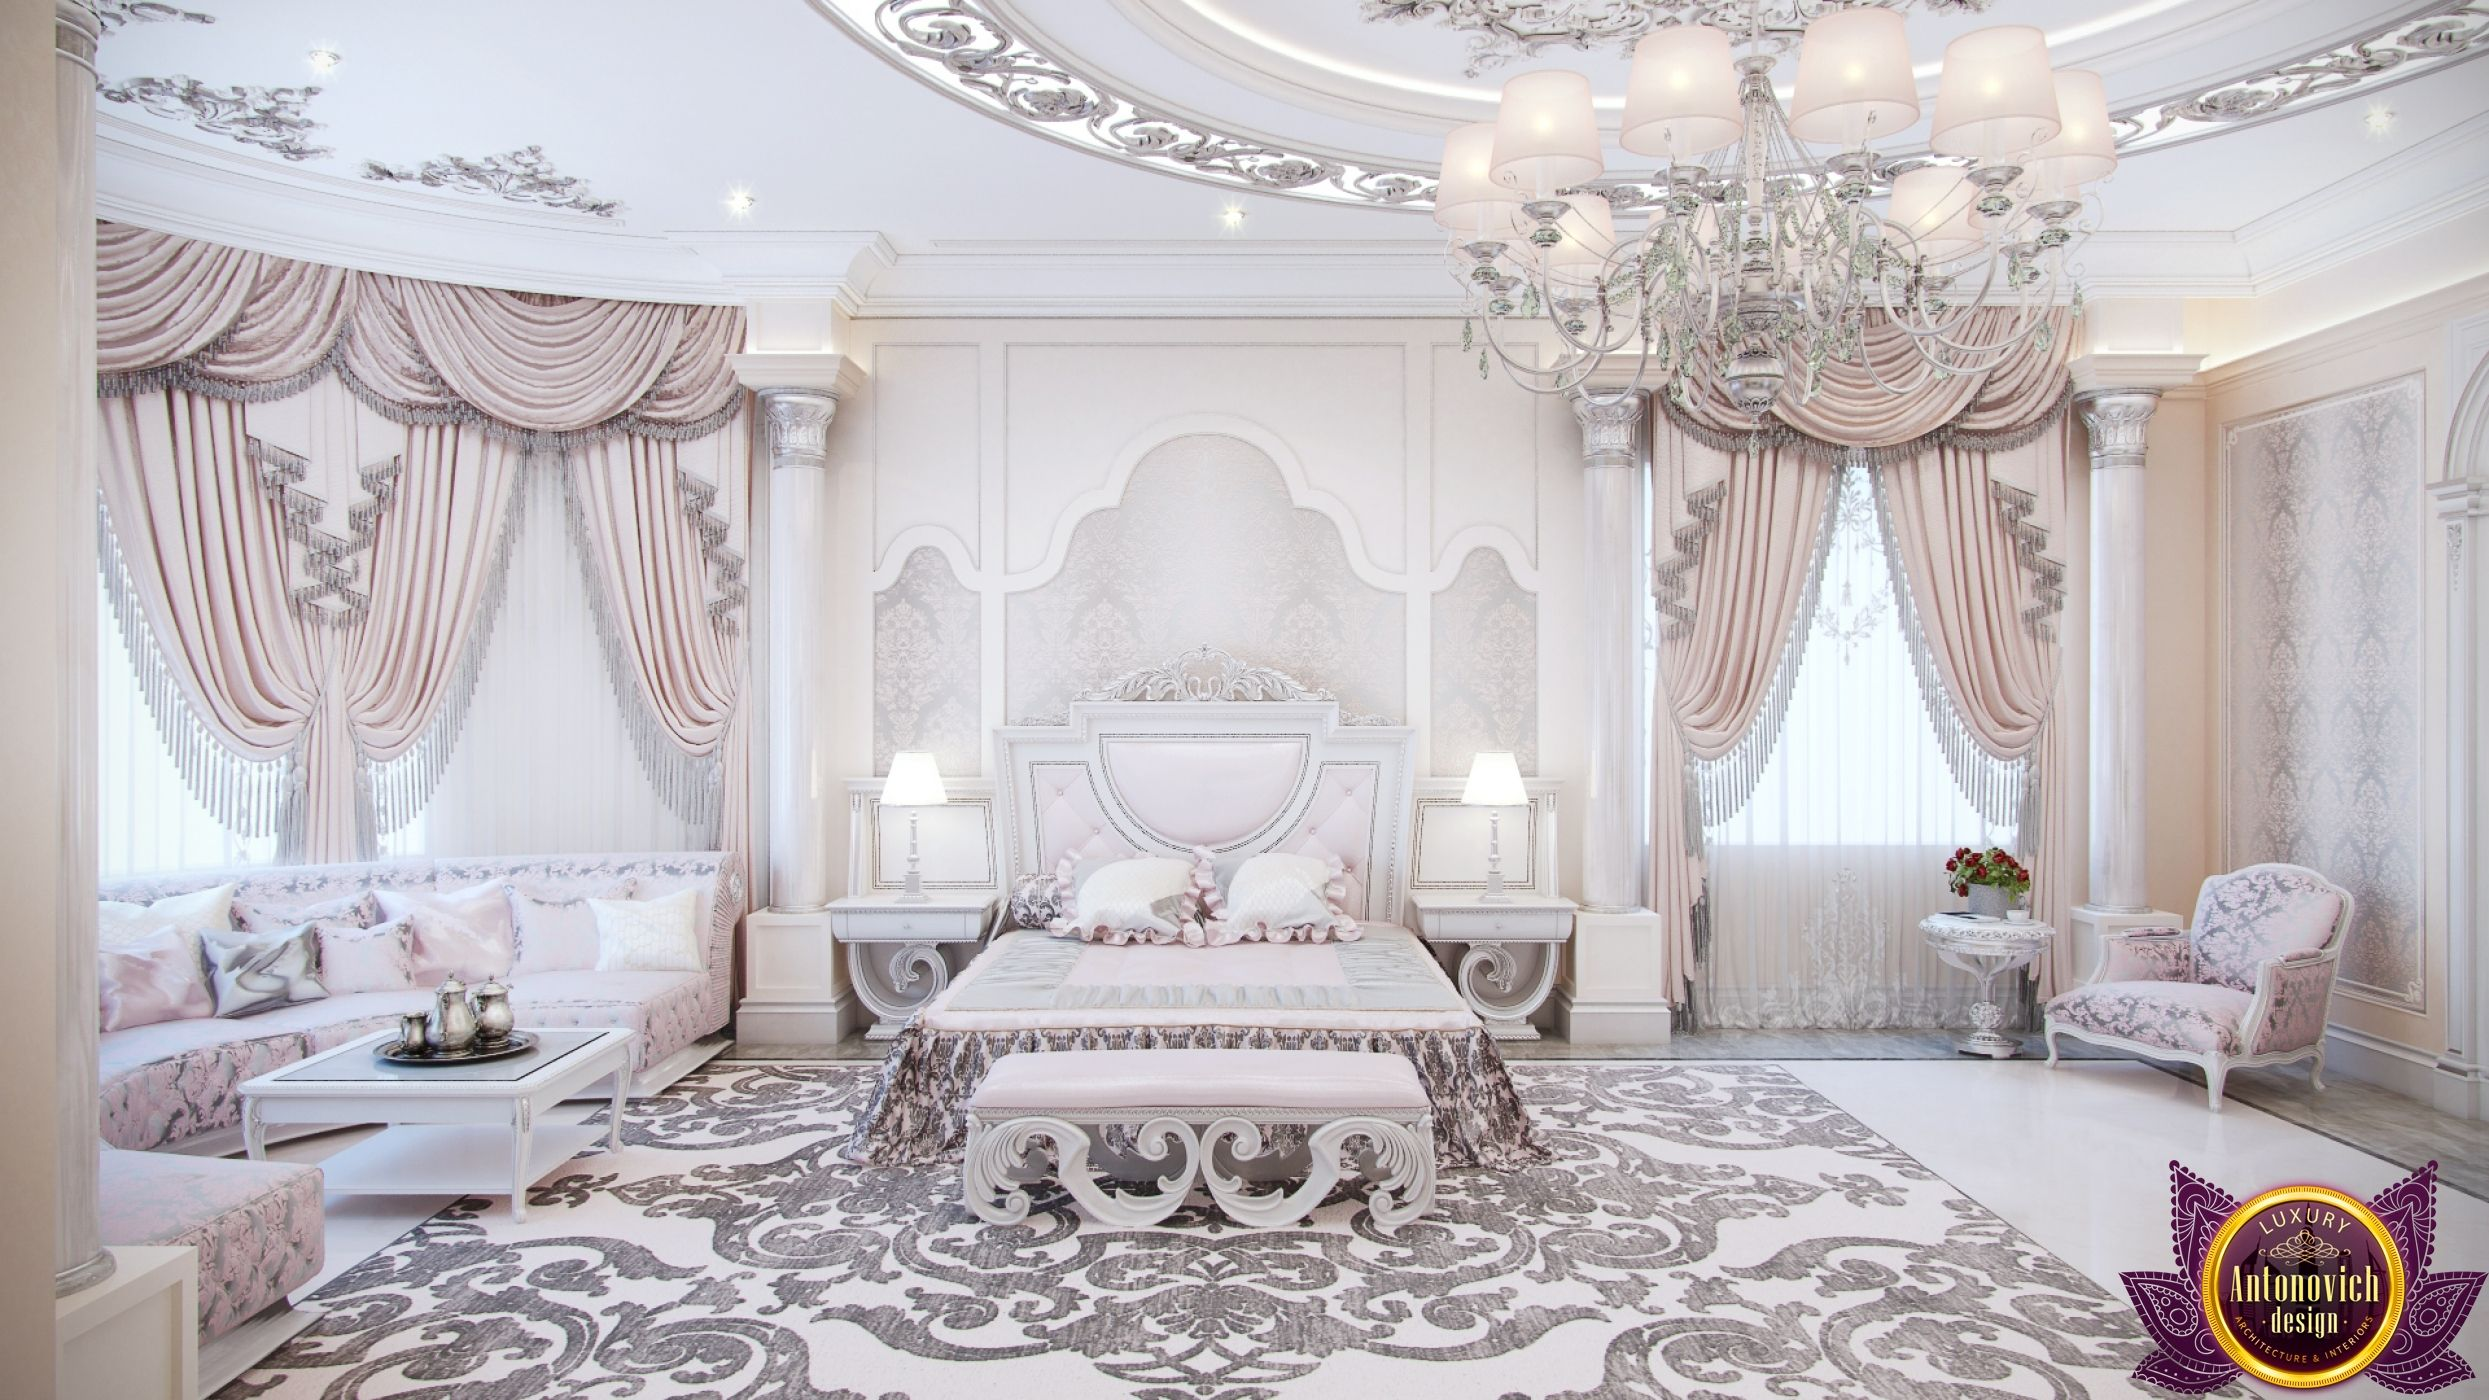 Master Bedroom in Dubai, Interior design for bedrooms, Photo 2